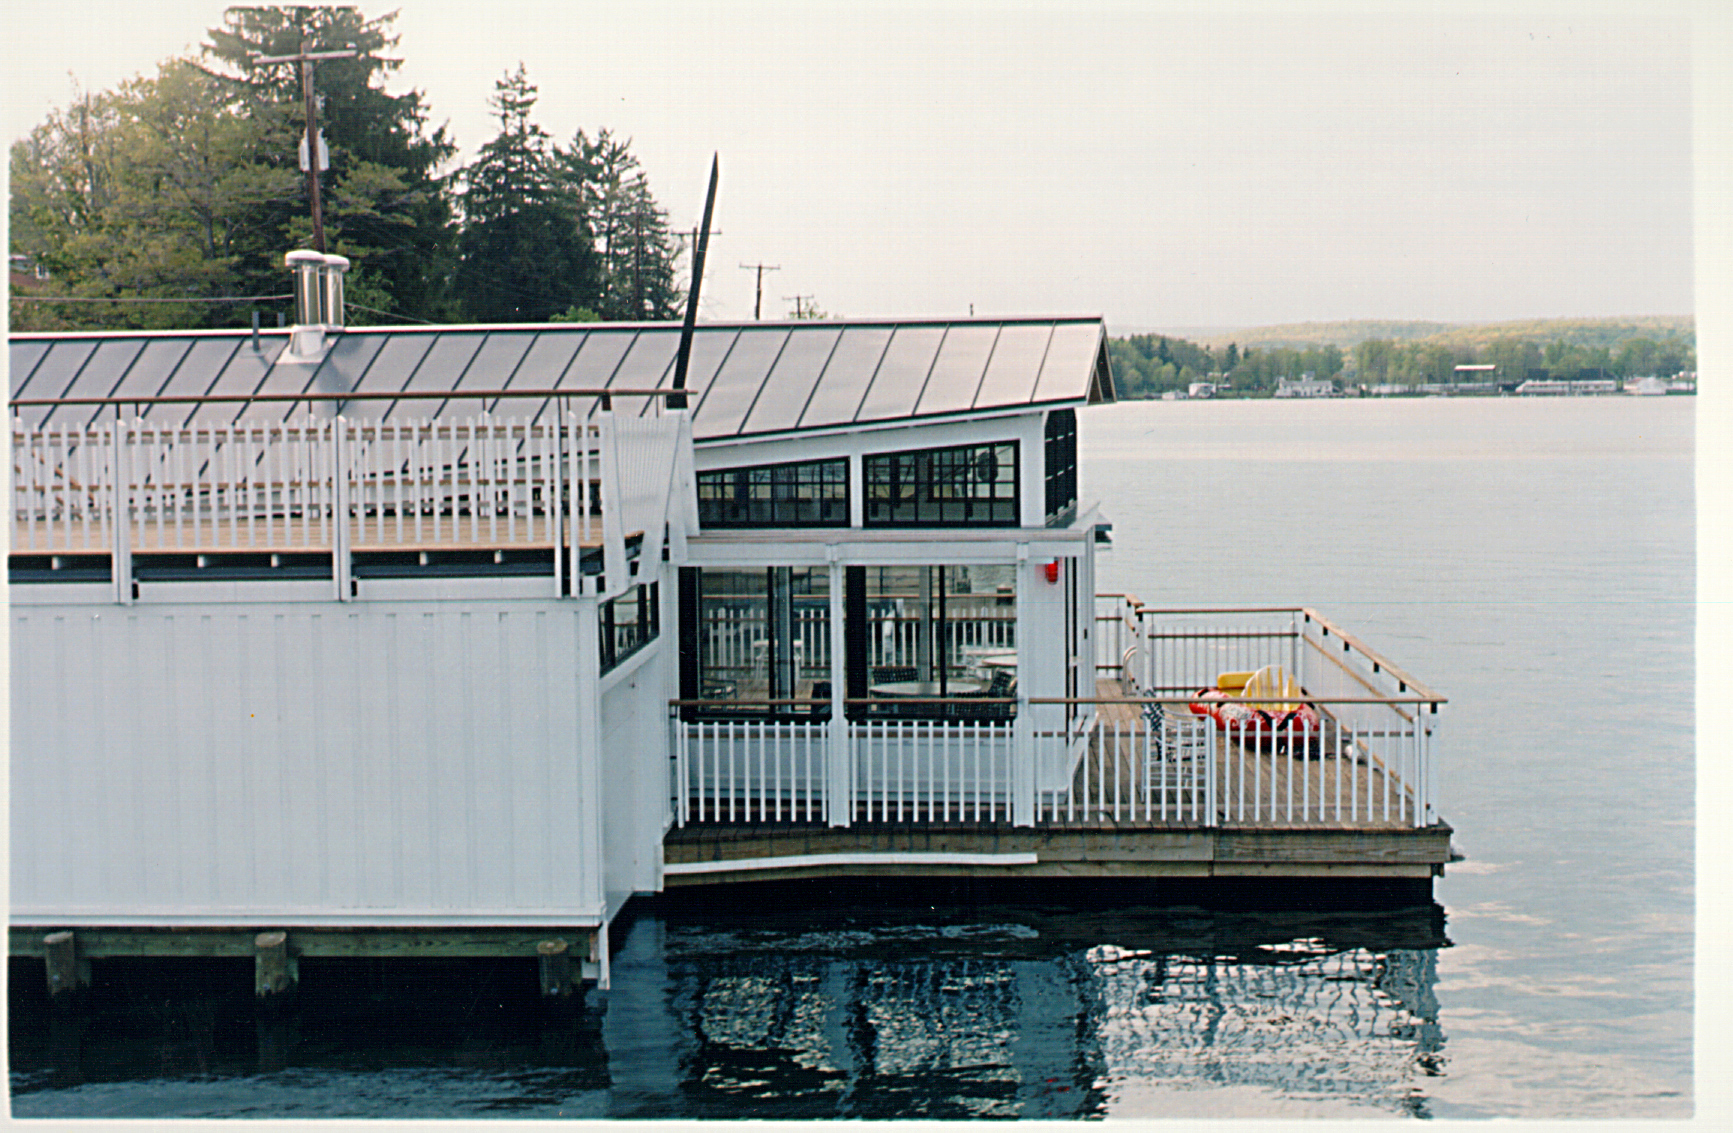 Boat House, Barn, and Dock